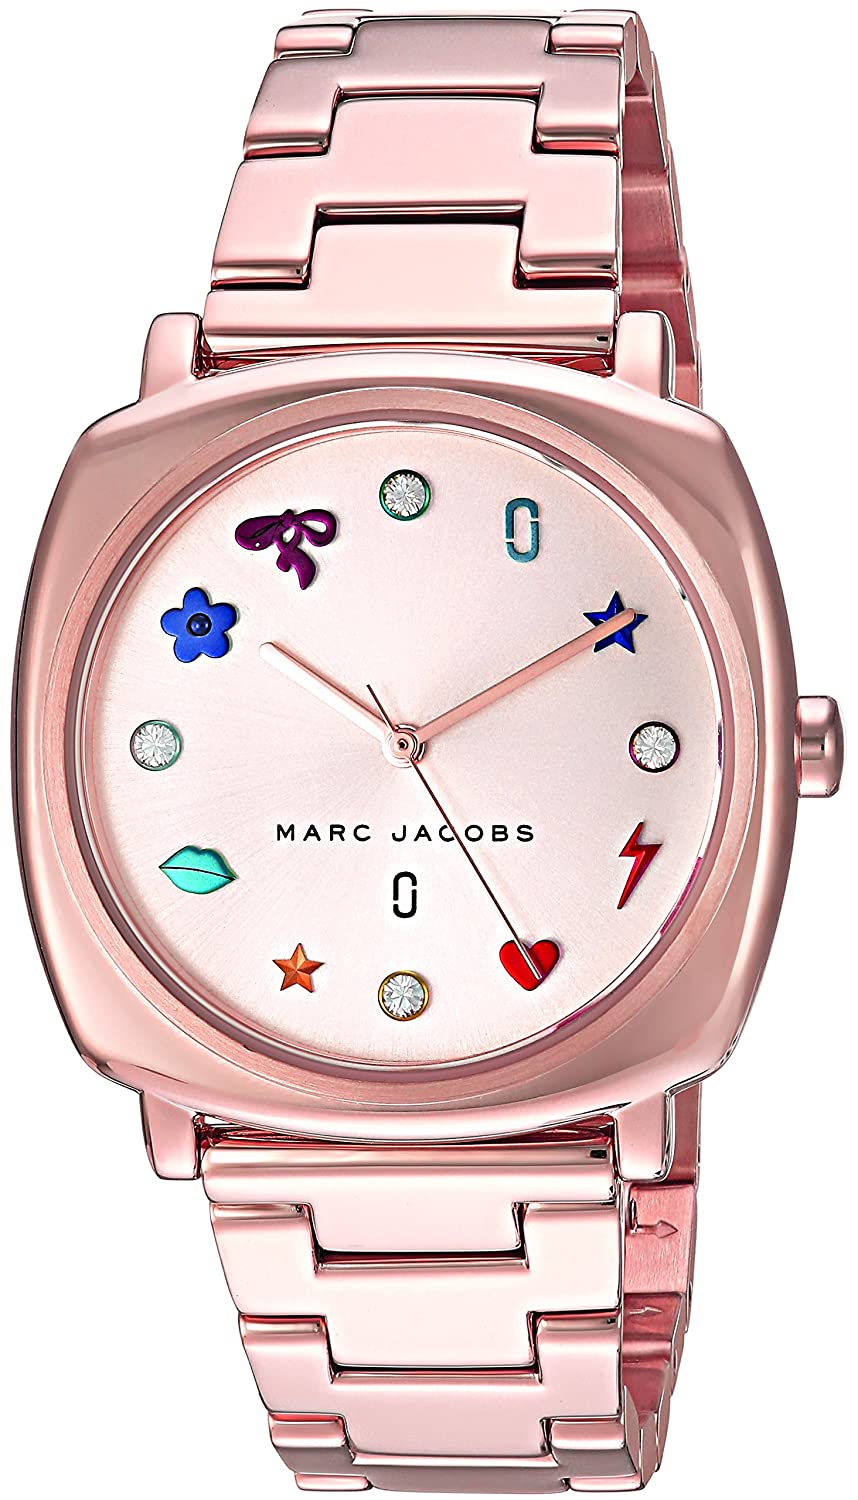 Modern Square Dial Watches Clothing Shoes Jewelry Fossil Idealist Silver Es4194 Womens Mandy Quartz Stainless Steel Casual Watch Color Rose Gold Toned